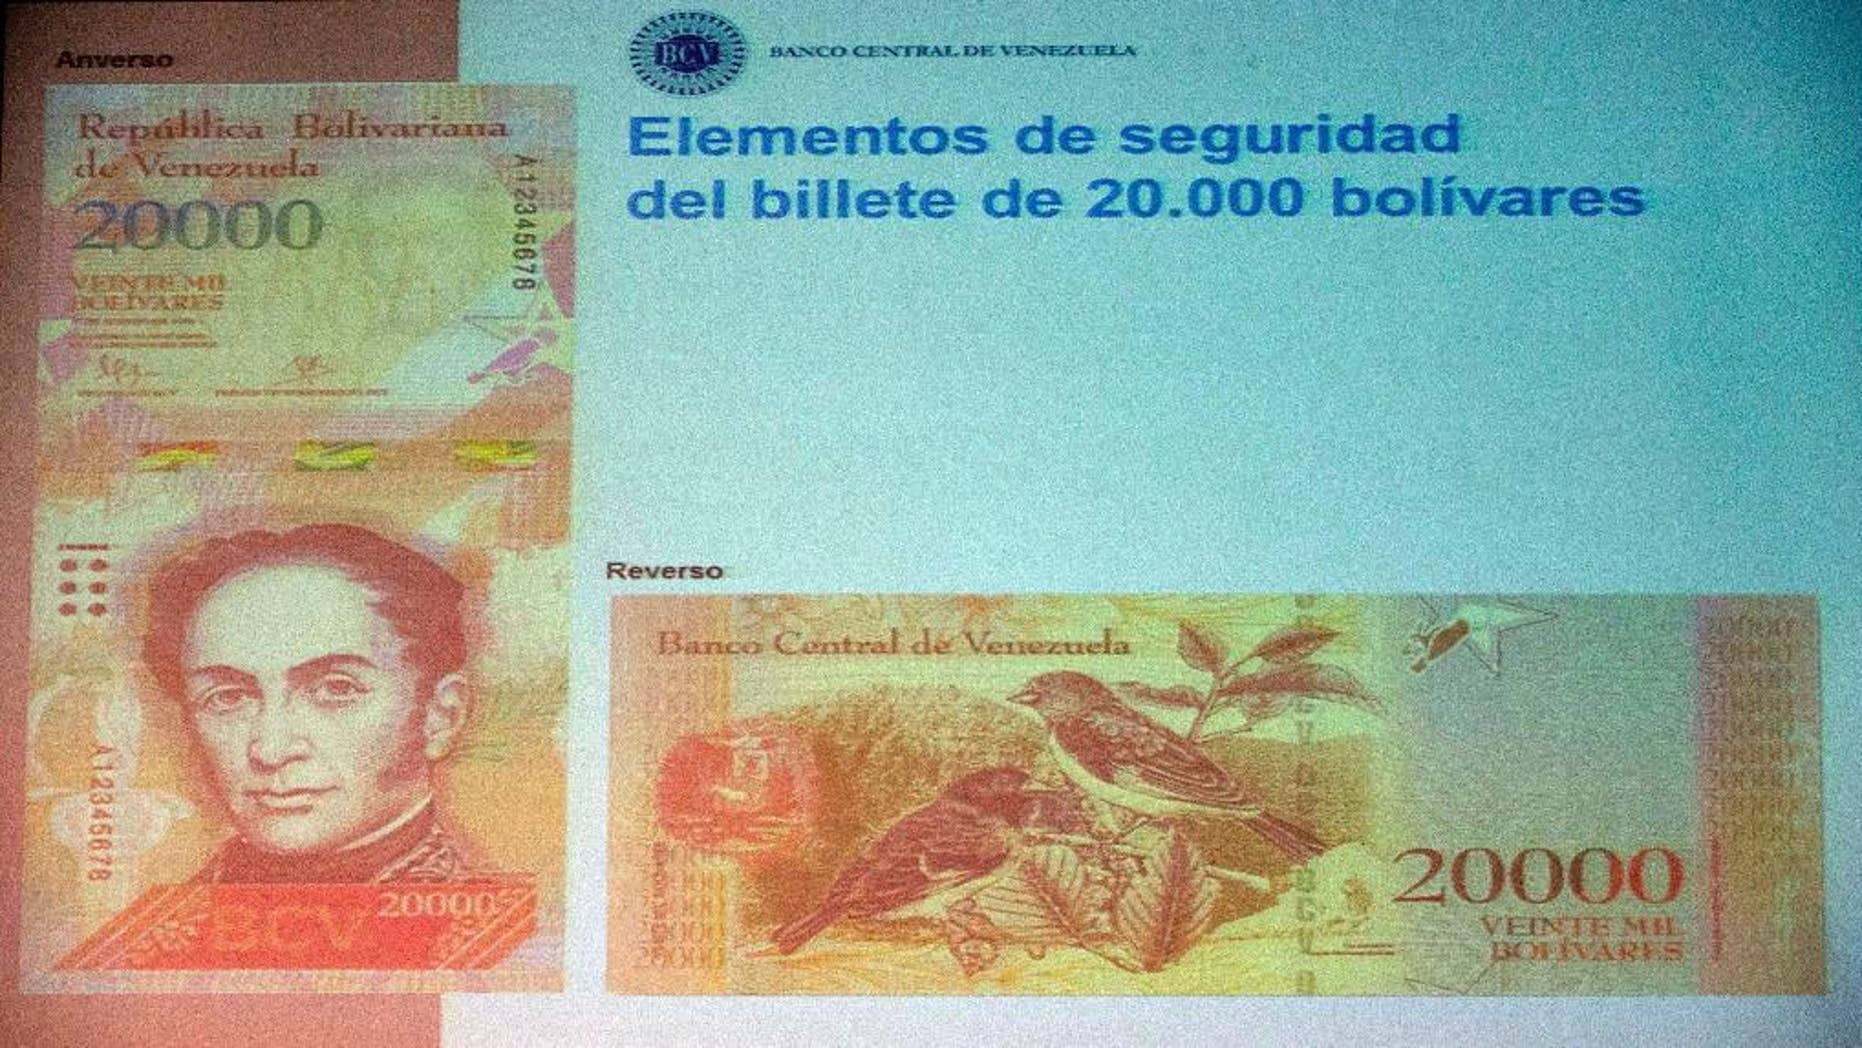 The front and back of the newly issued 20,000 Bolivar is displayed during a news conference in Caracas, Venezuela, Wednesday, Dec. 7, 2016. Venezuelan Central Bank President Nelson Merentes unveiled the new series of higher-denominated bills as triple-digit inflation and a currency meltdown leave the country's largest note worth just around 2 U.S. cents on the black market. (AP Photo/Fernando Llano)